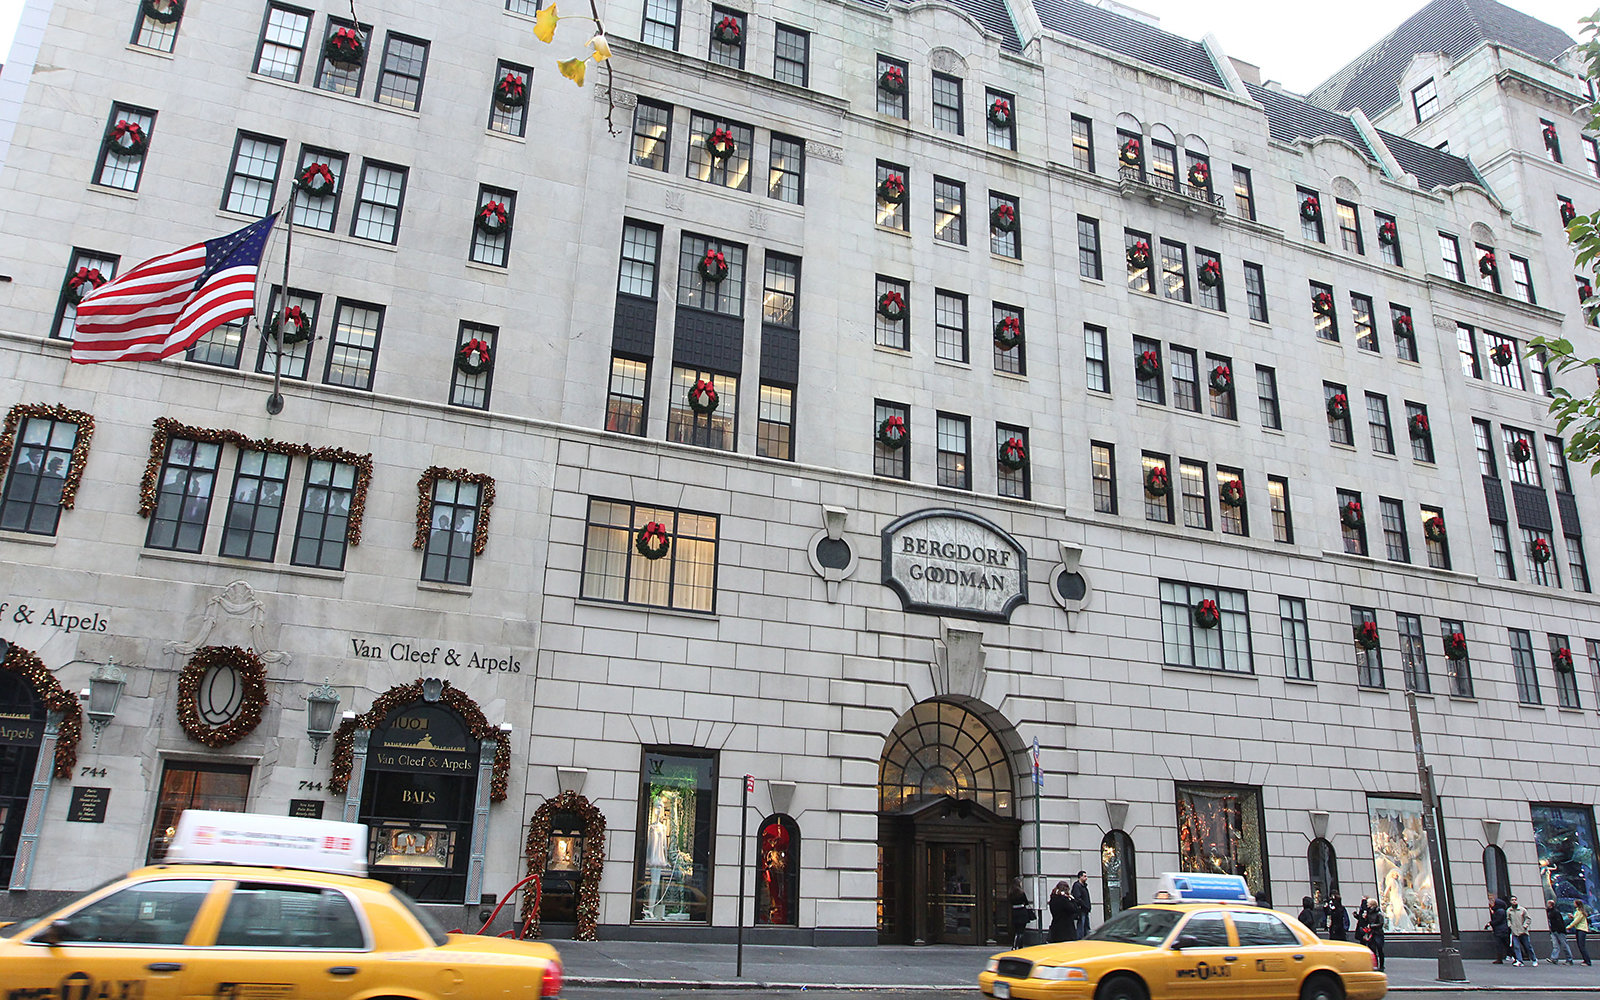 NEW YORK, NY - NOVEMBER 23:  Exterior view of the 2011 Holiday Windows at Bergdorf Goodman on November 23, 2011 in New York City.  (Photo by Rob Kim/Getty Images)